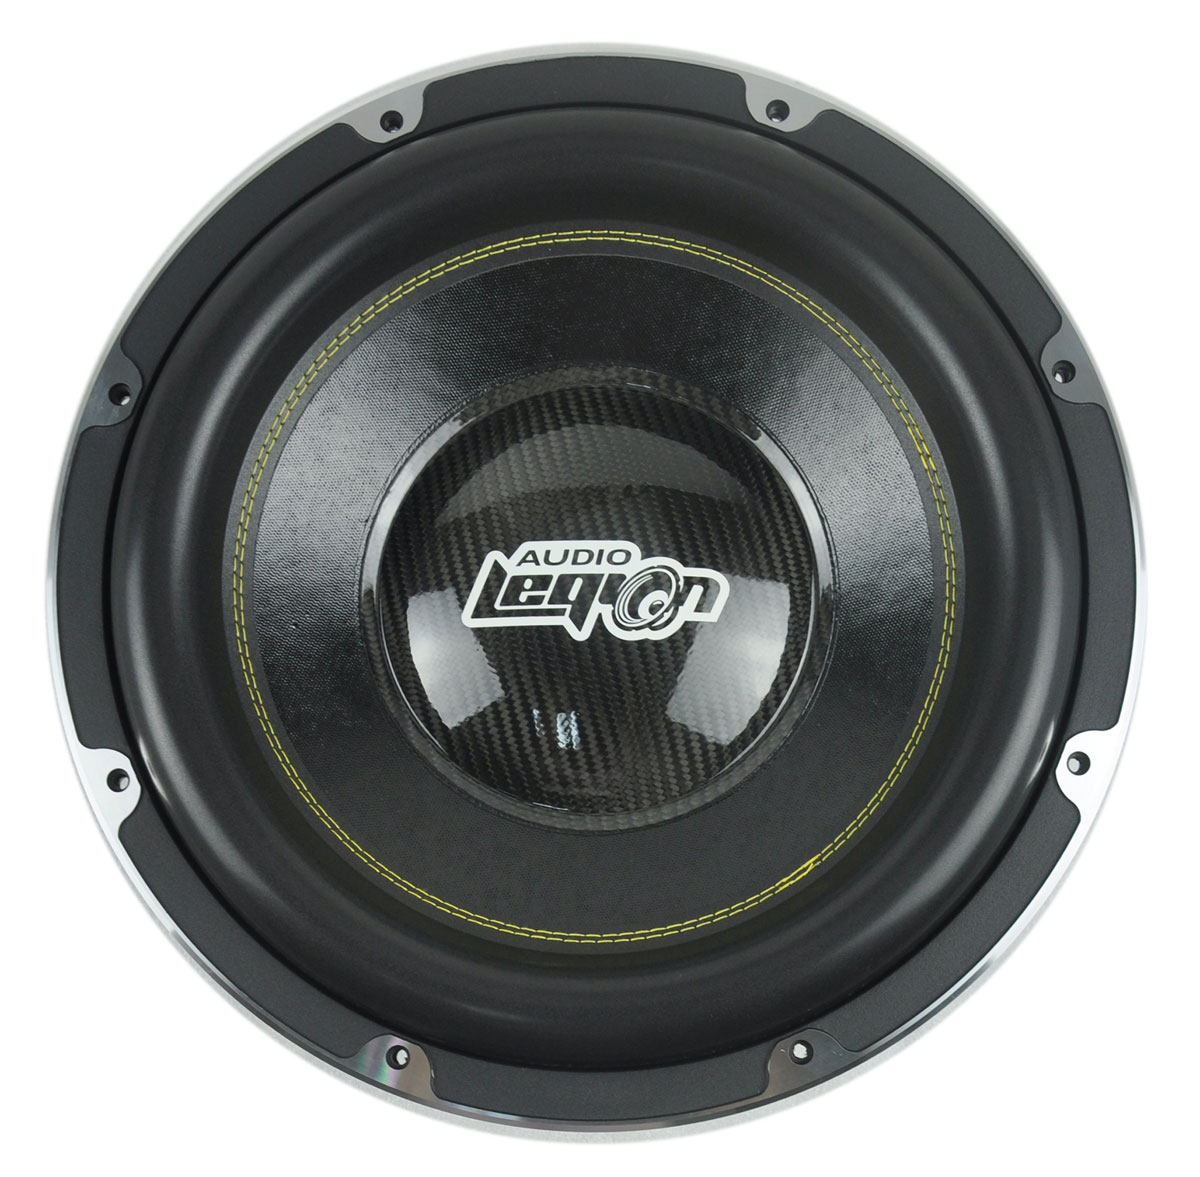 "Audio Legion S3015 Car Audio Dual 2 Ohm 15"" Subwoofer 3000W SPL Competition Sub"